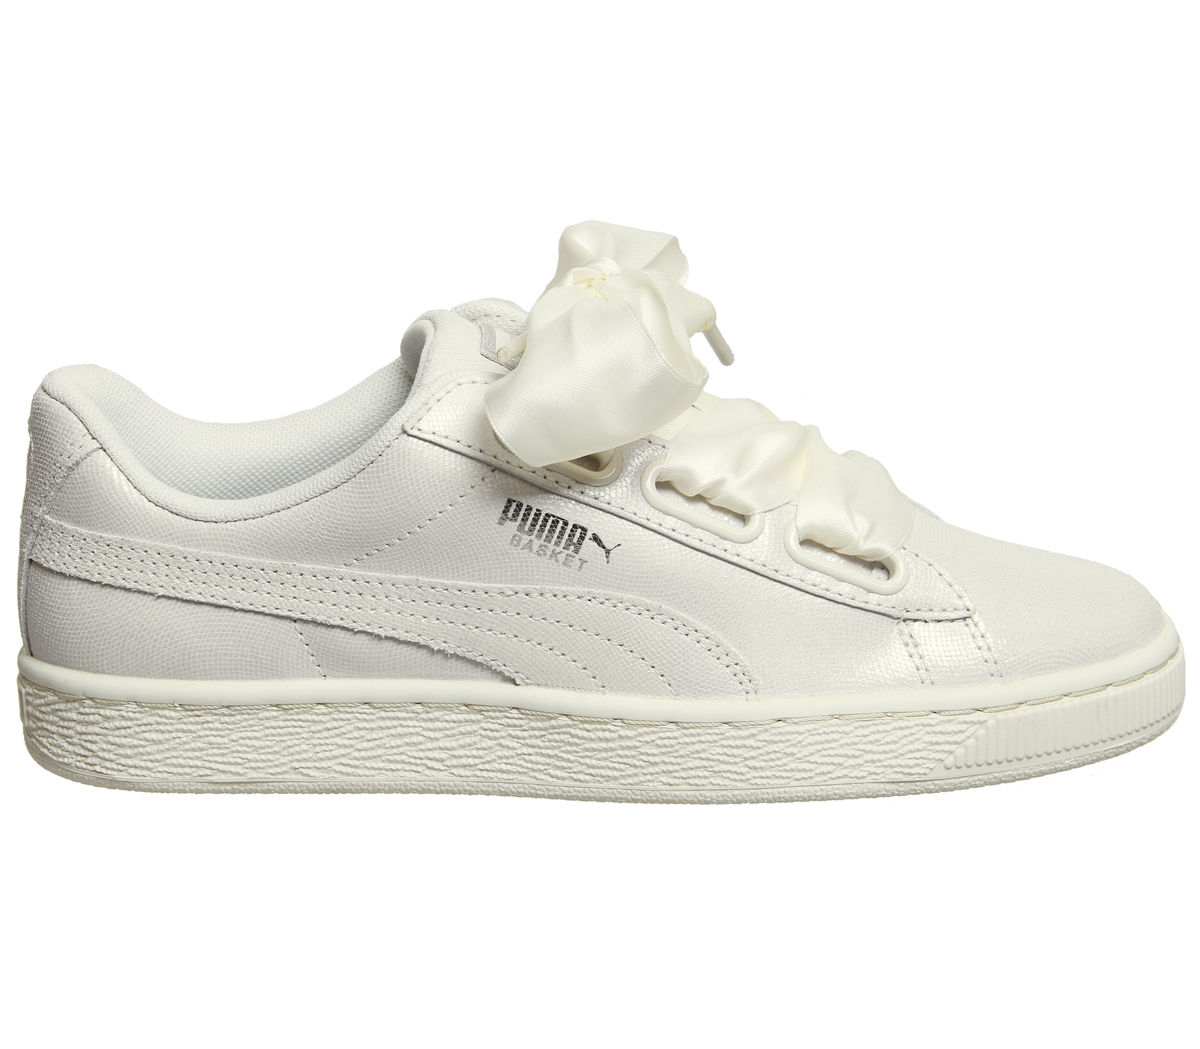 4b76f634fa14 Sentinel Womens Puma Basket Heart Trainers Puma White Shine Trainers Shoes